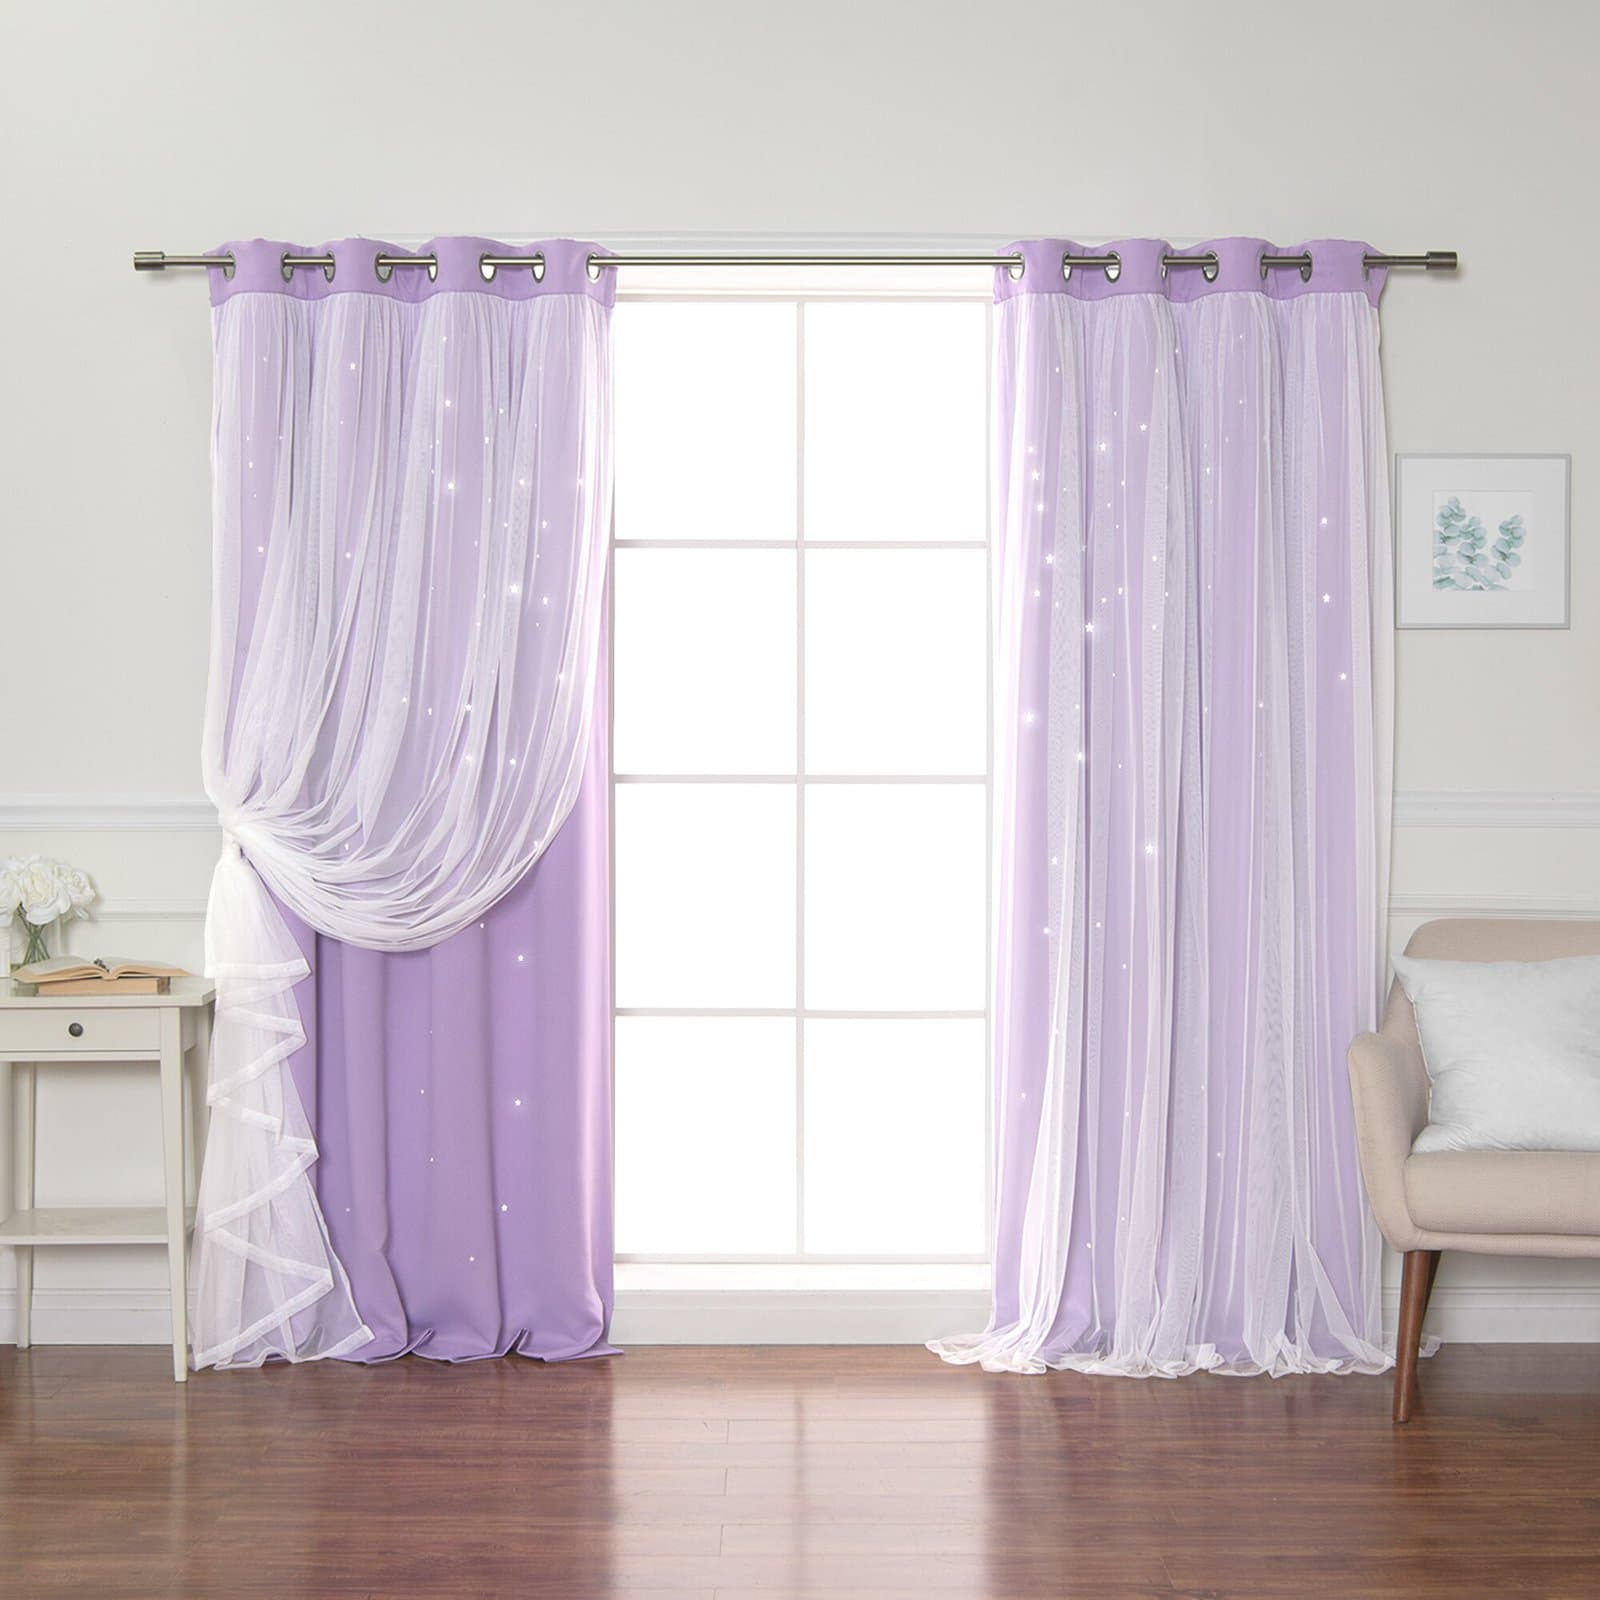 Tulle Overlay Star Cut-Out Curtains